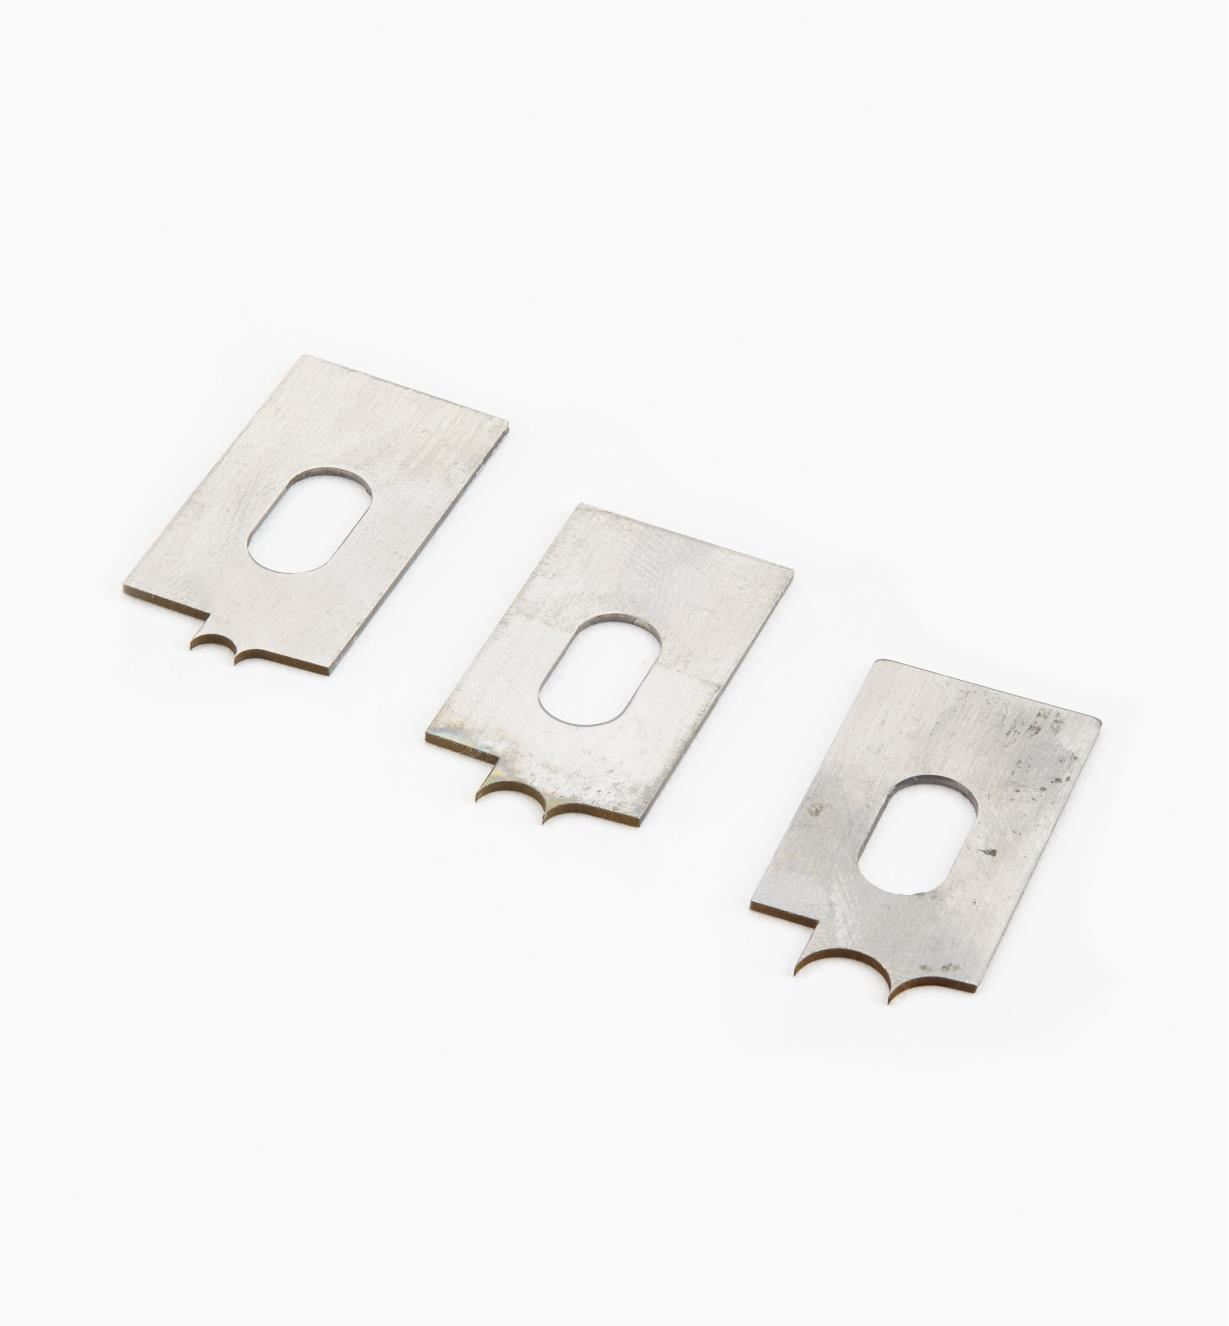 05P0403 - Beading Cutters, set of 3*